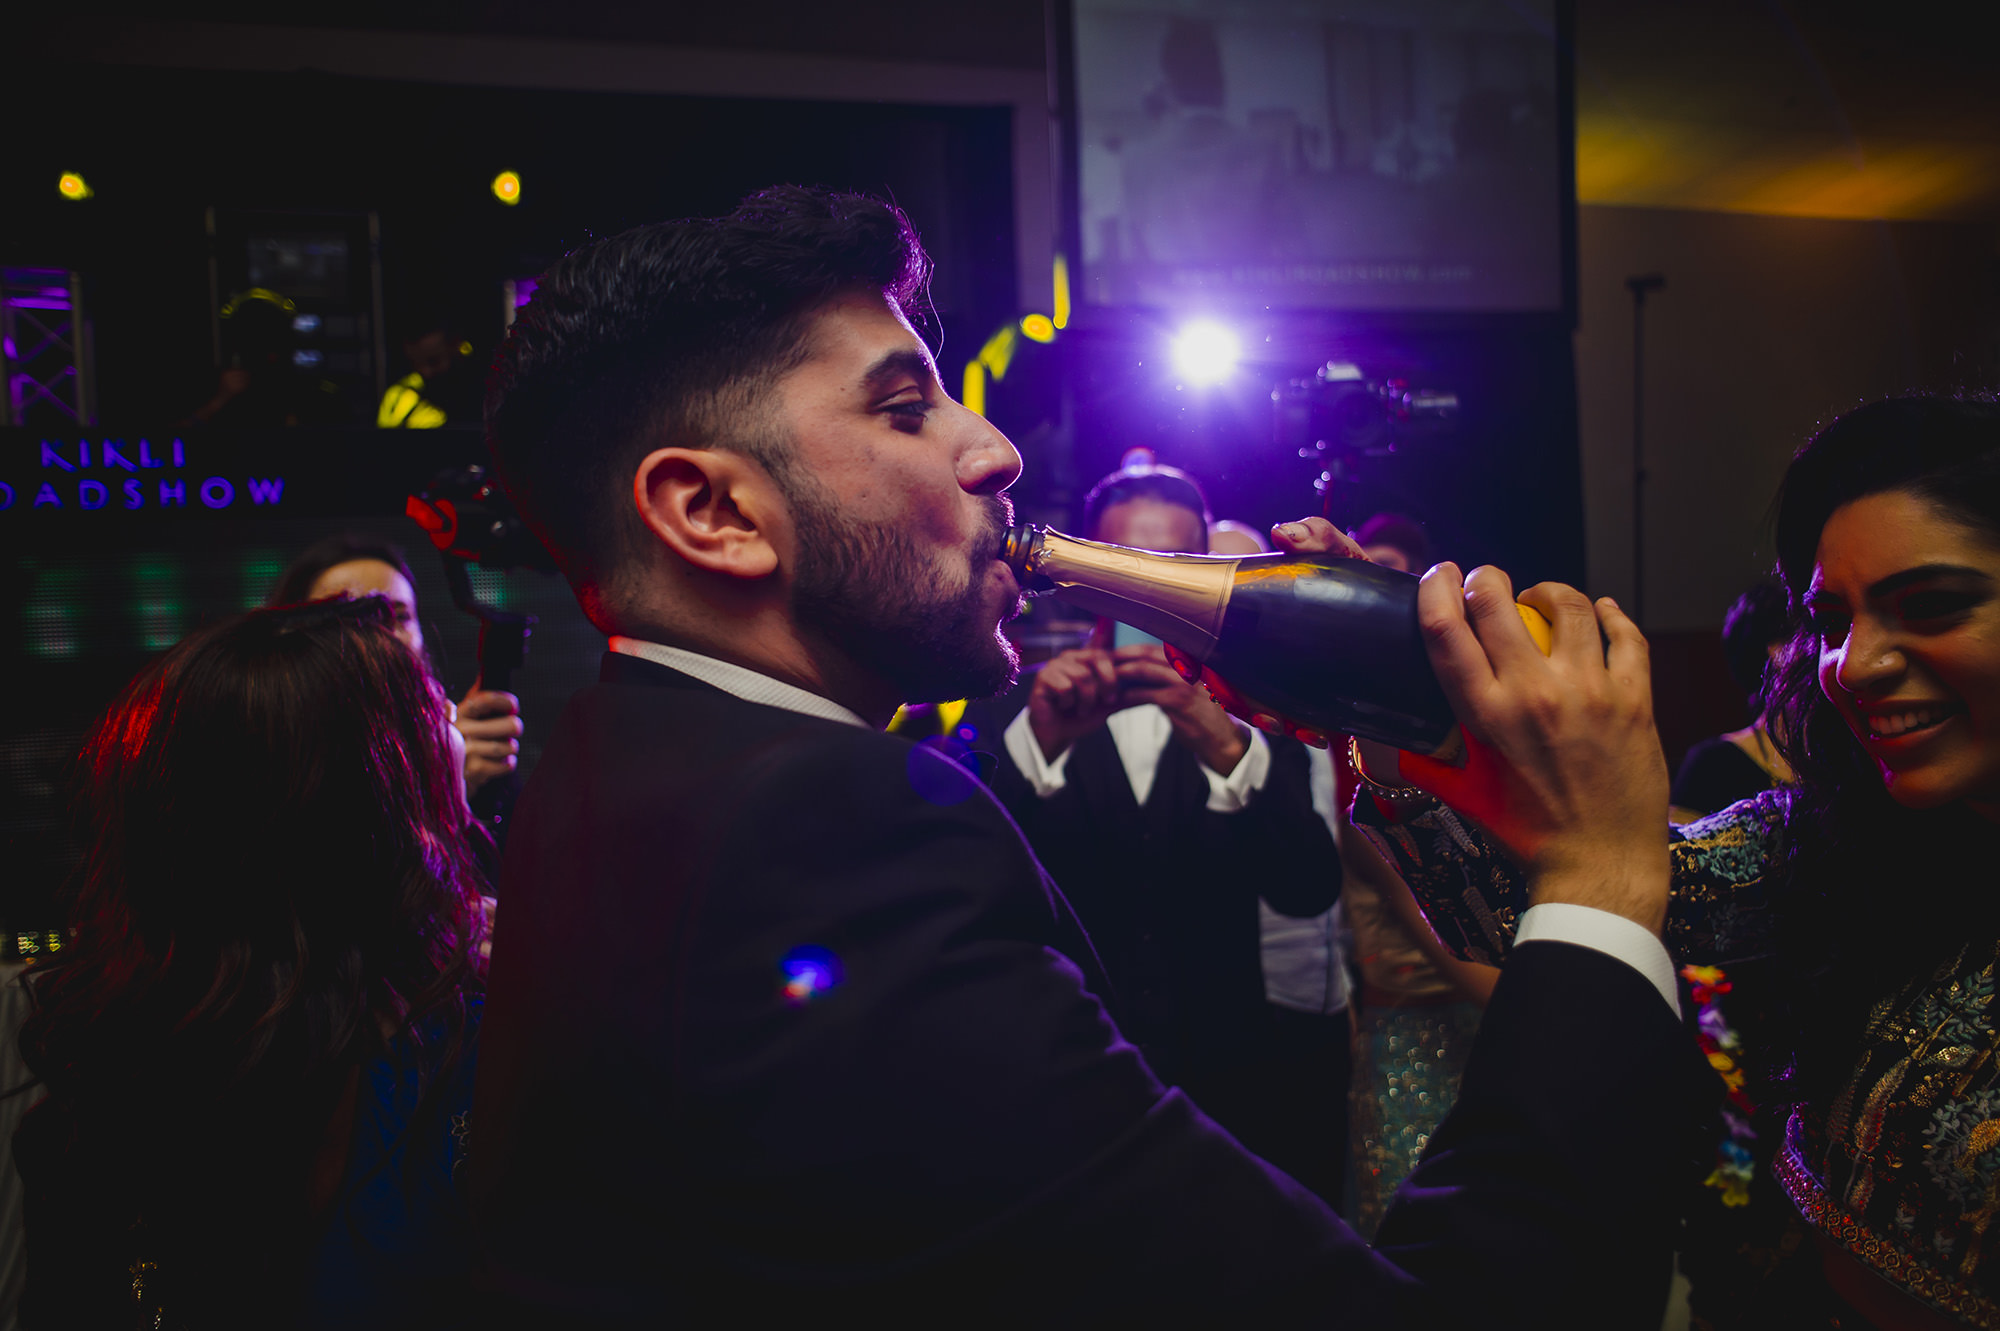 groom drinking from champagne bottle at his wedding reception